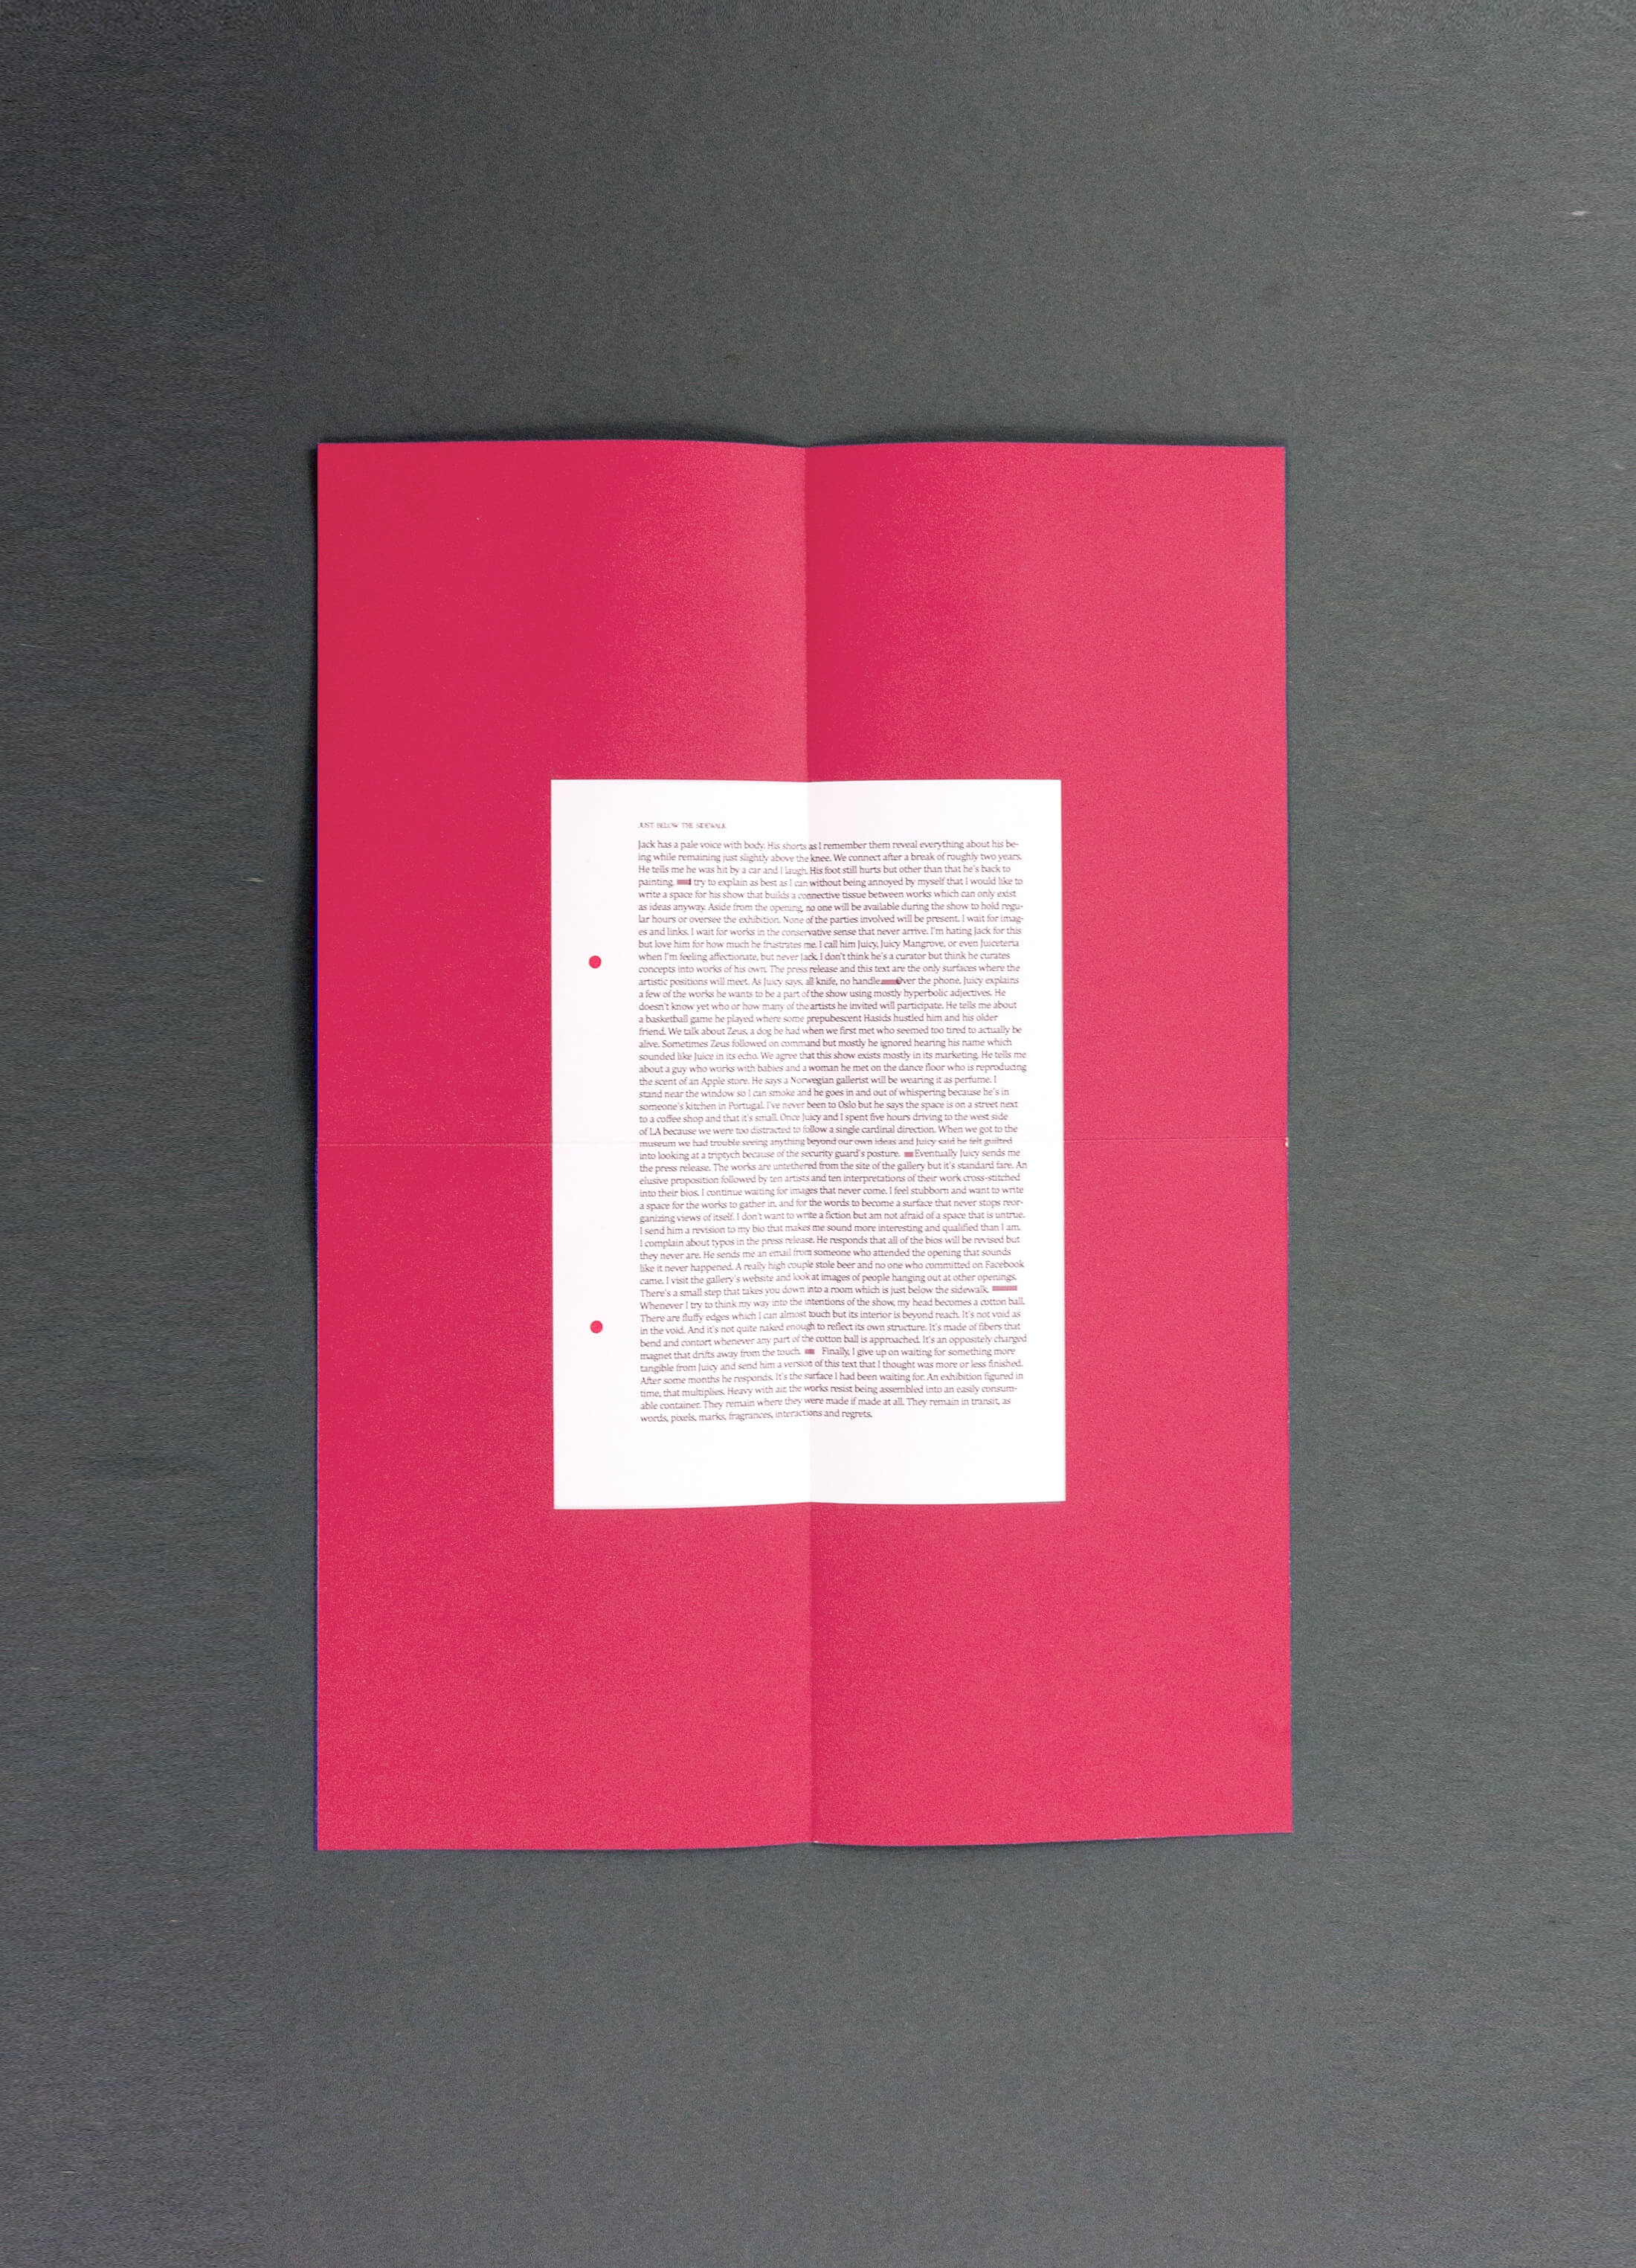 Folded piece of magenta paper with text on printed on it.